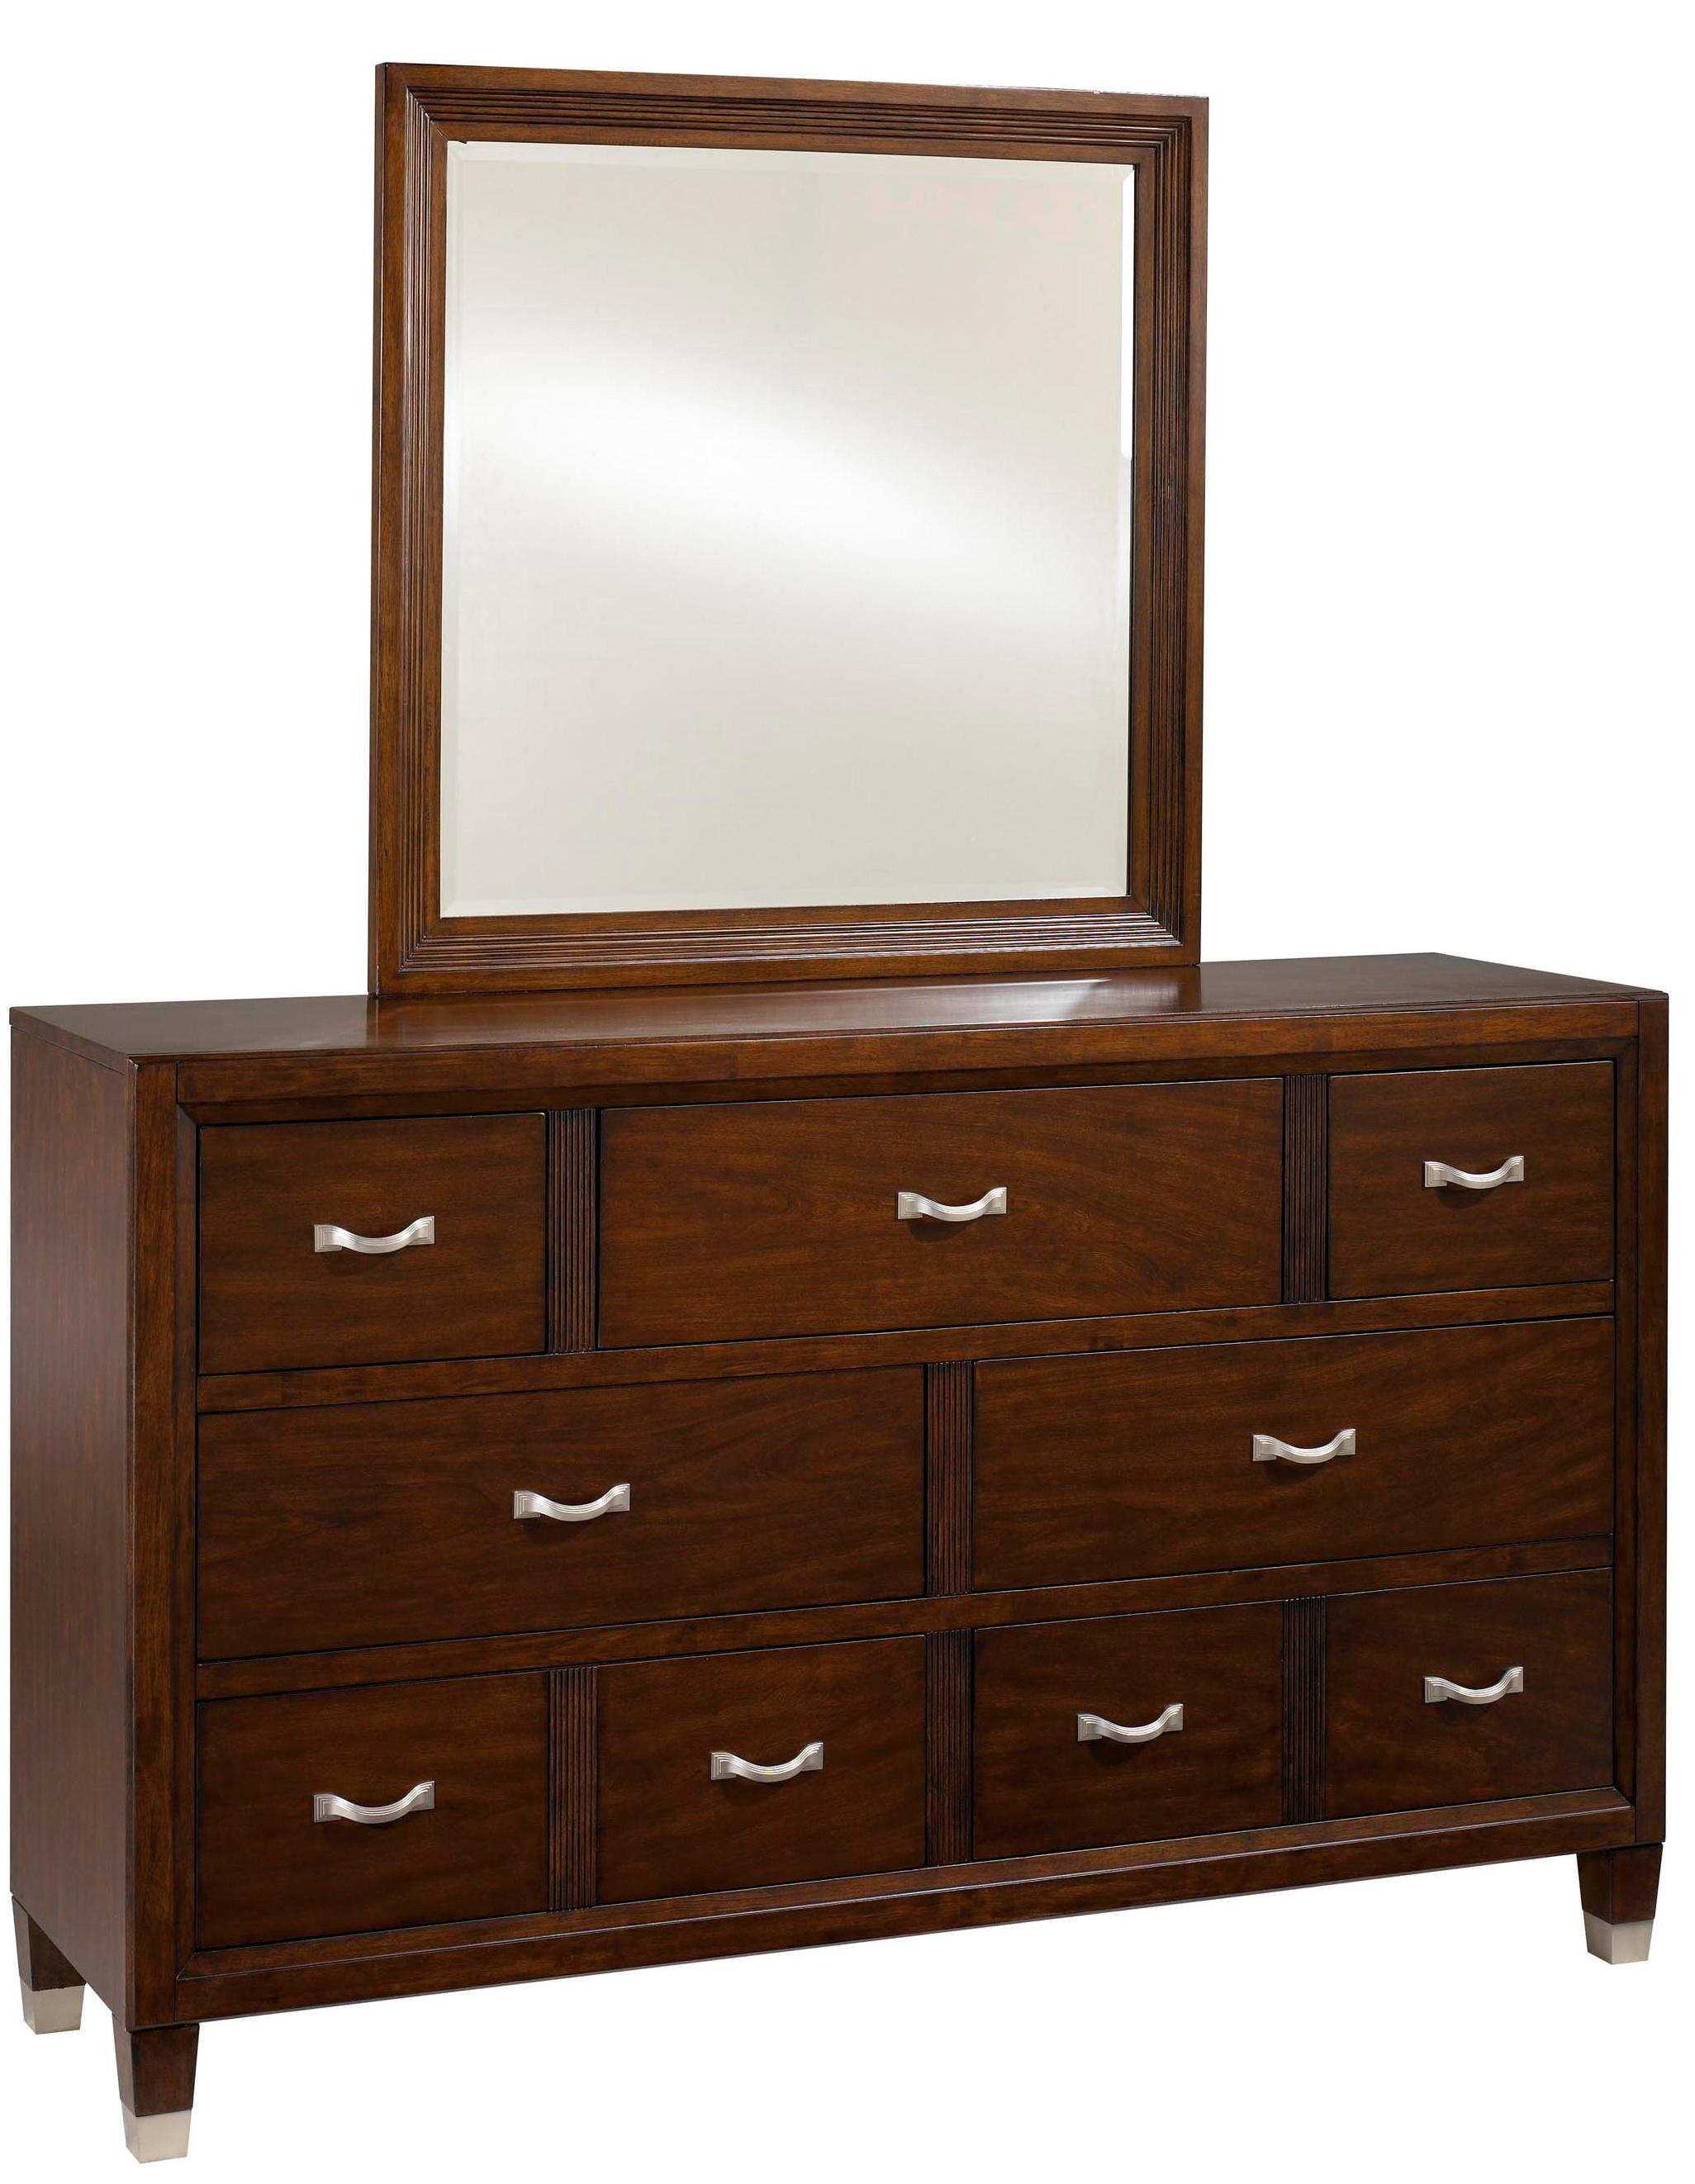 Broyhill Furniture Eastlake 2 Drawer Dresser With Landscape Dresser Mirror    Item Number: 4264